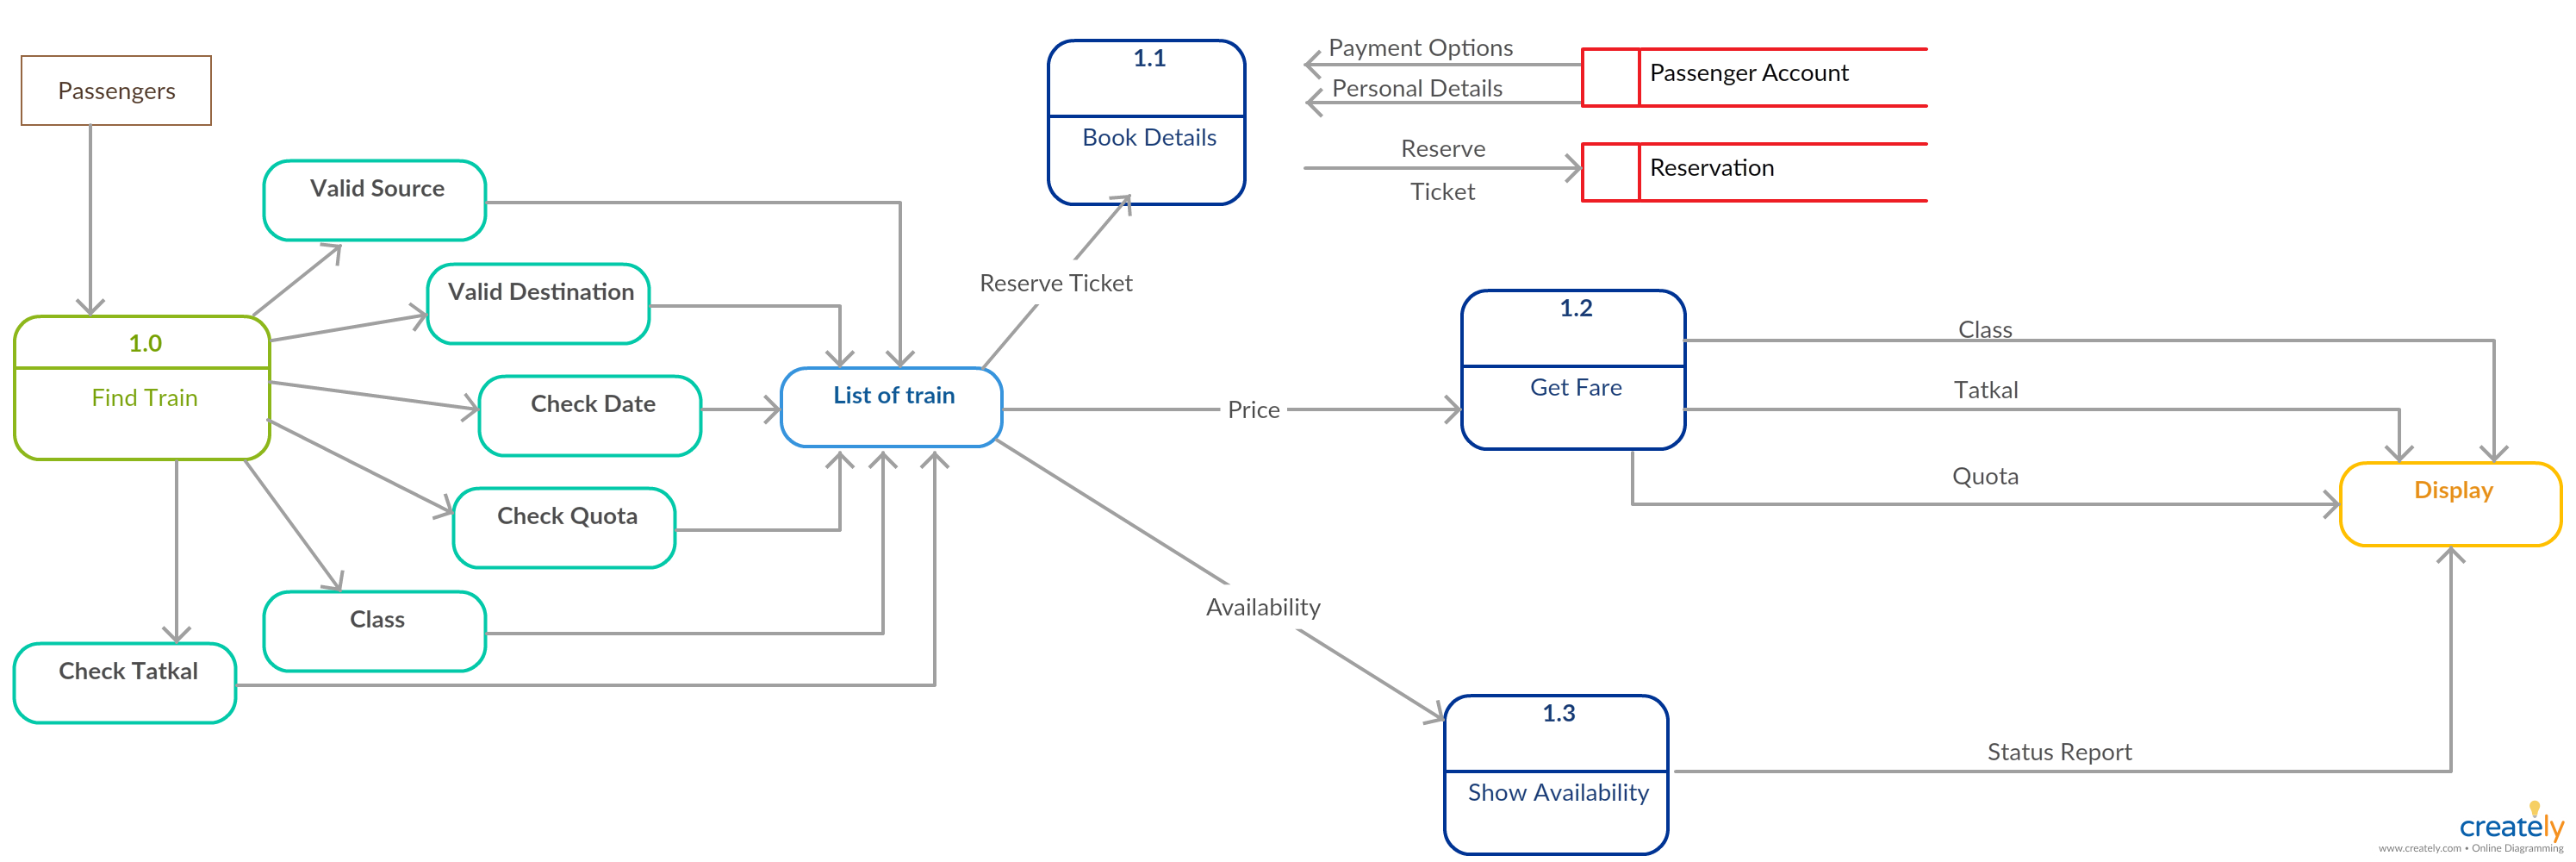 Data flow diagram dfd for railway reservation level 2 this level data flow diagram dfd for railway reservation level 2 this level explains how ccuart Images